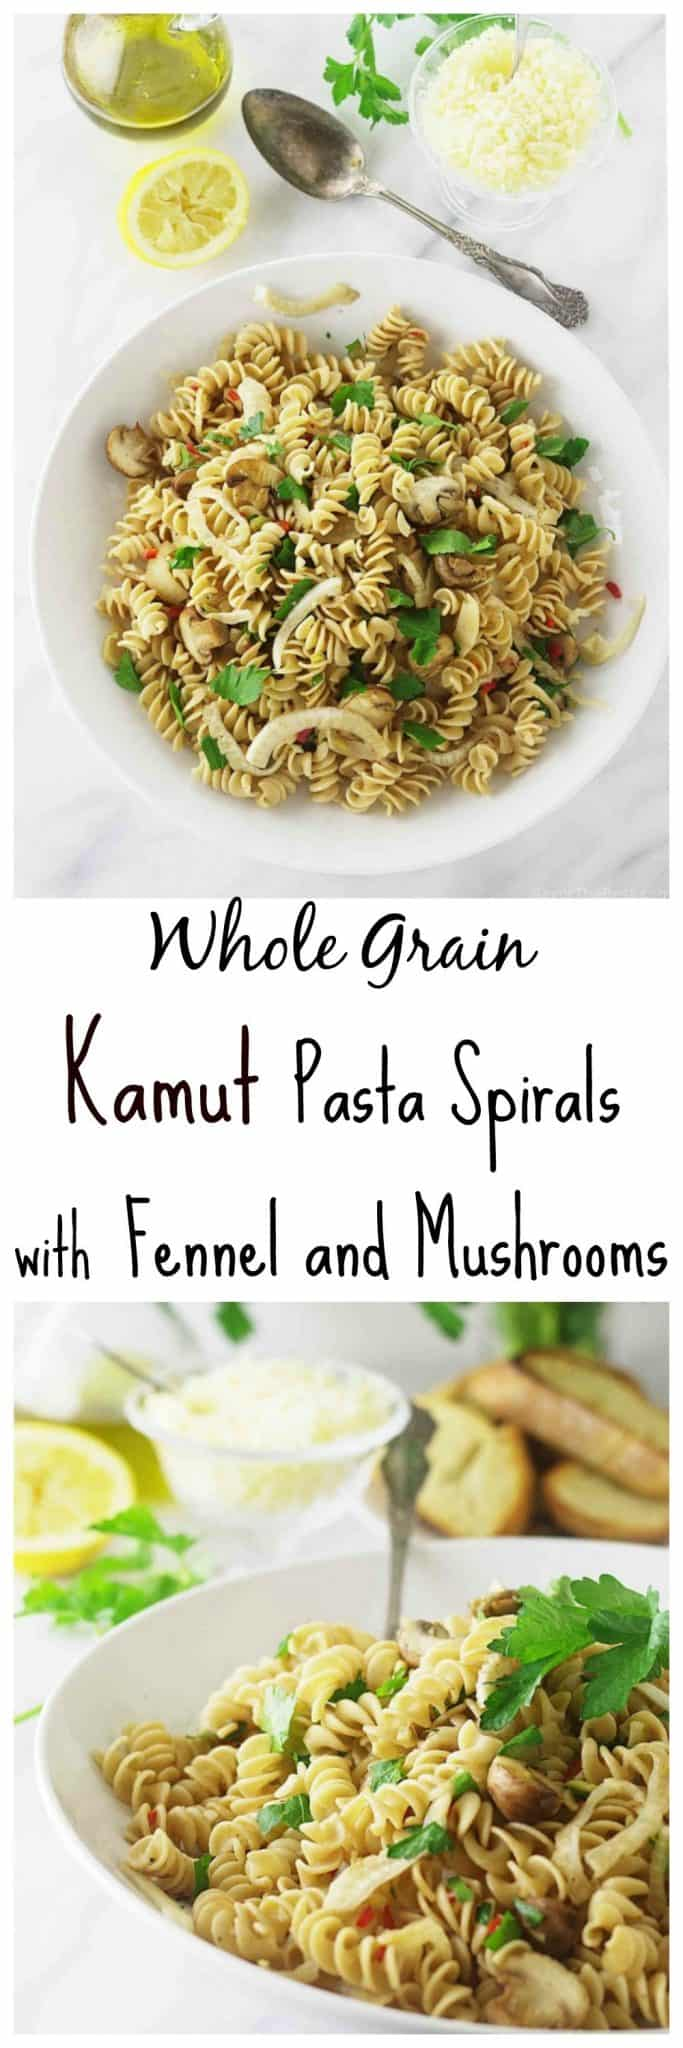 Whole grain Kamut pasta spirals with fennel and mushrooms